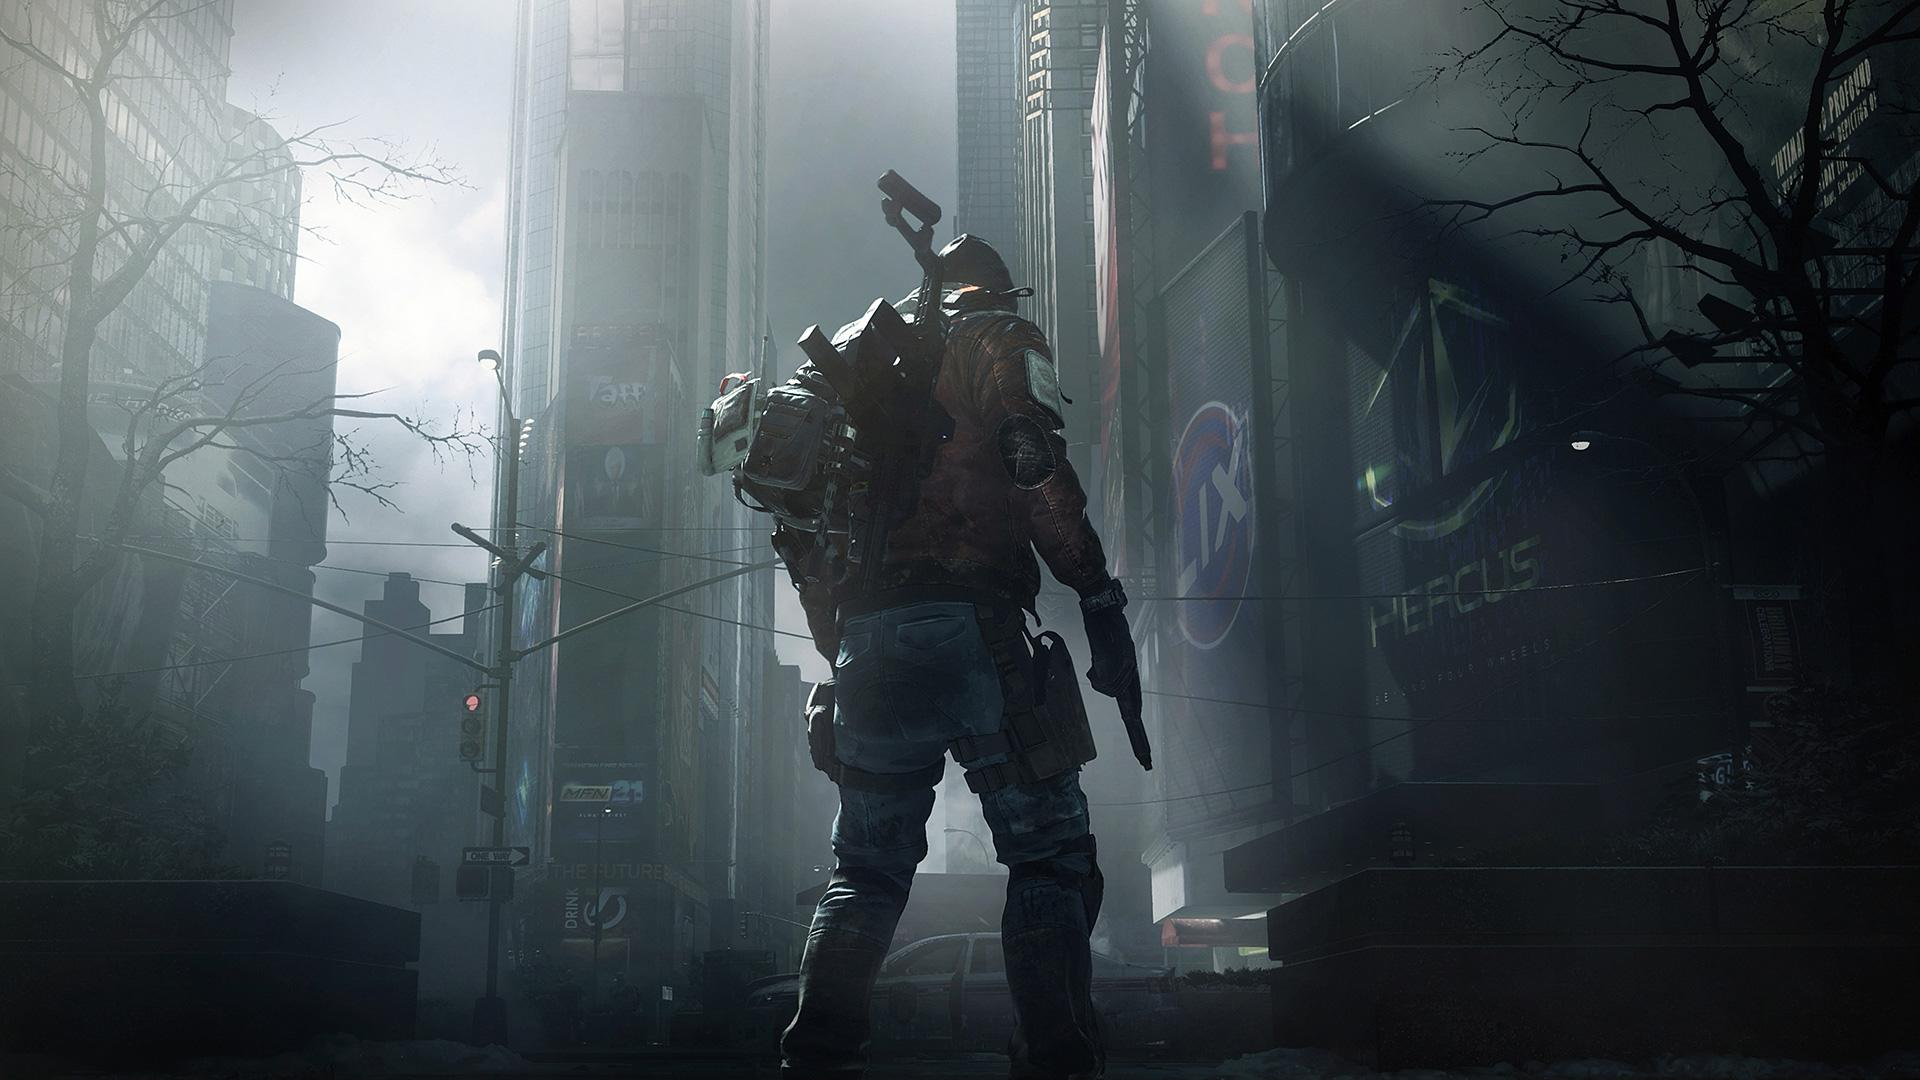 Amazing Tom Clancy's The Division Pictures & Backgrounds